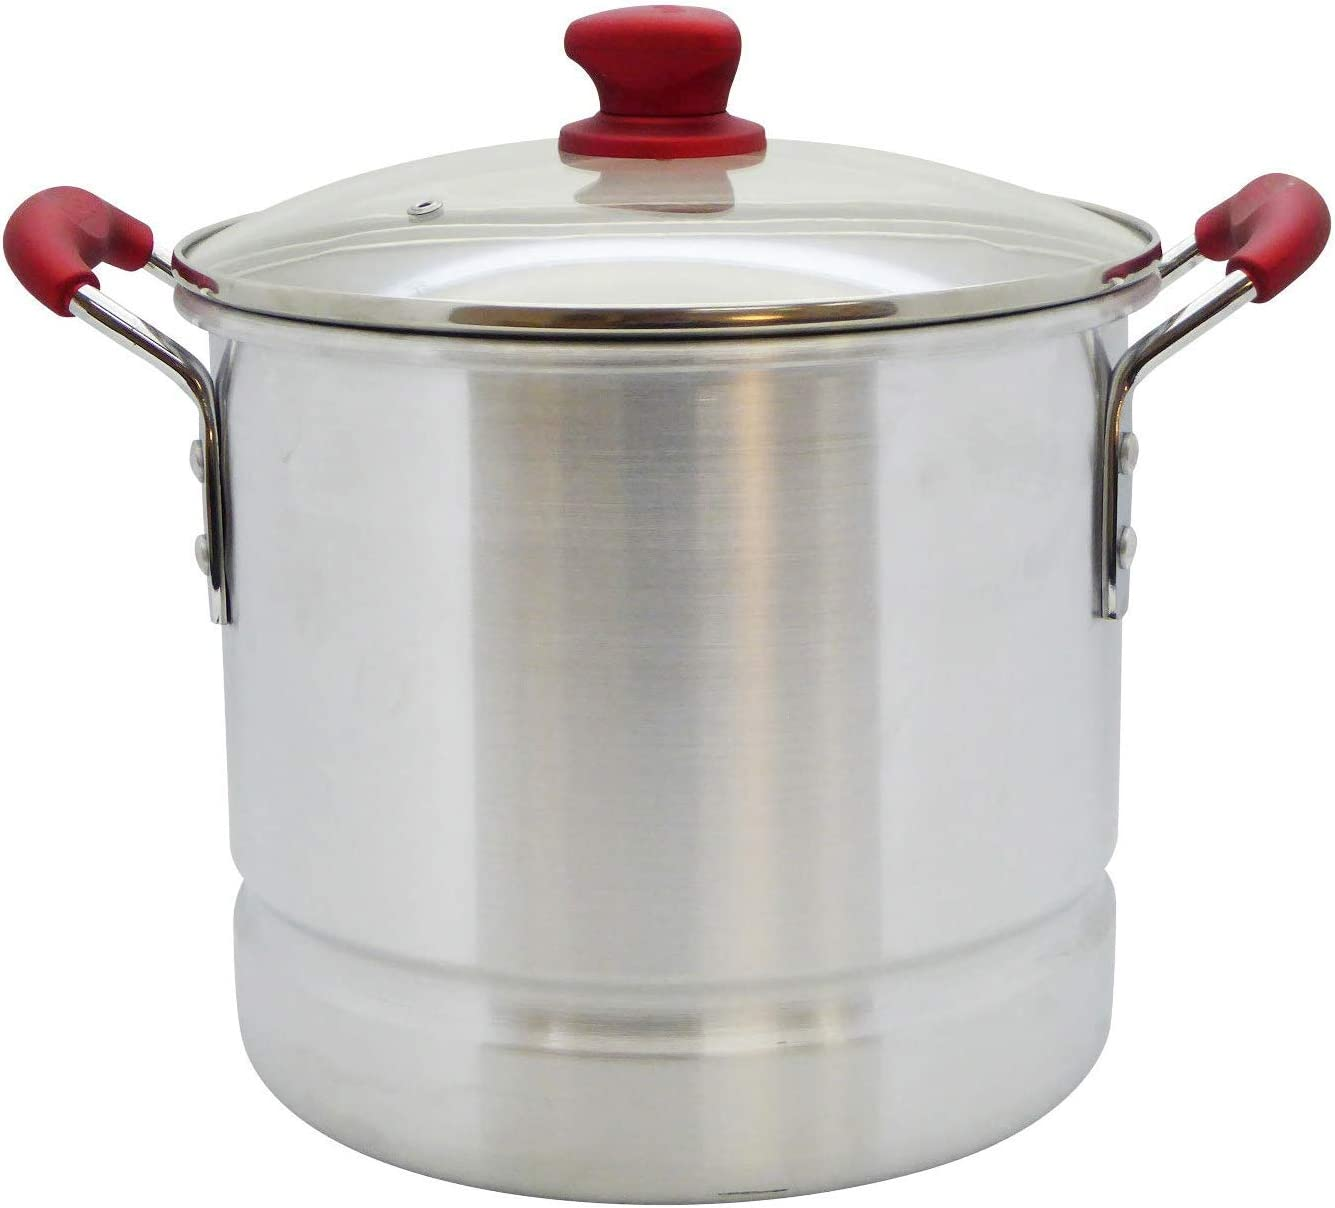 IMUSA USA, Ruby Red MEXICANA-732 32 Quart Aluminum Steamer with Glass Lid & Soft Touch Handles